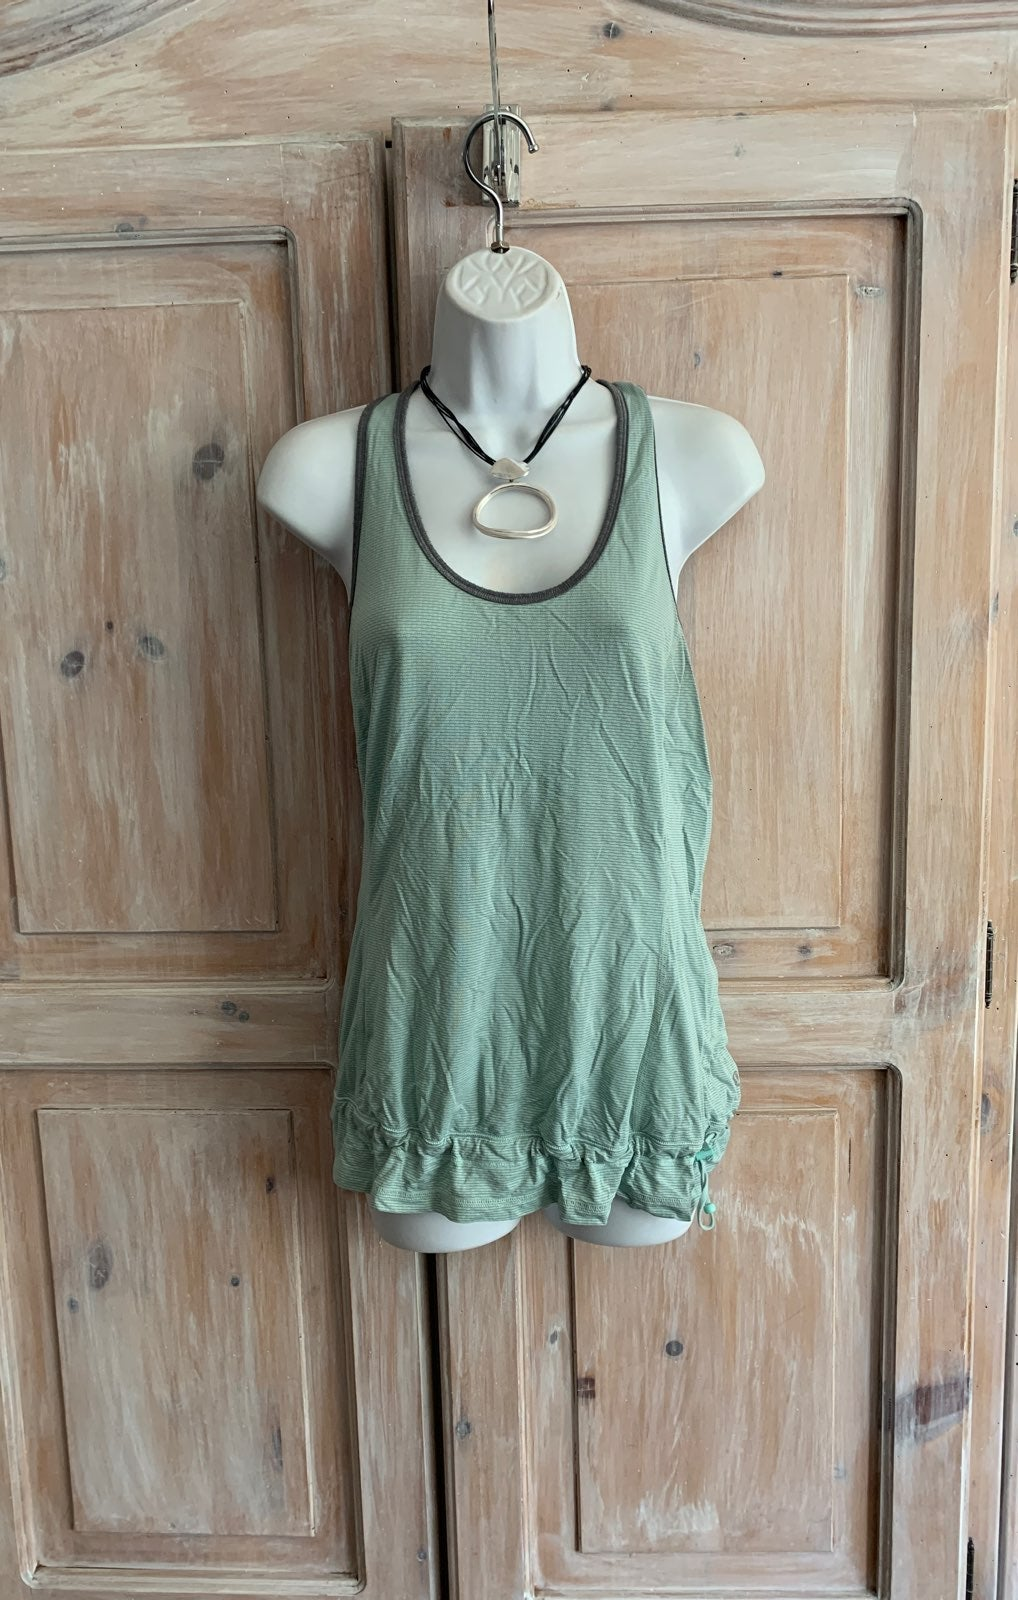 lululemon tank top-medium